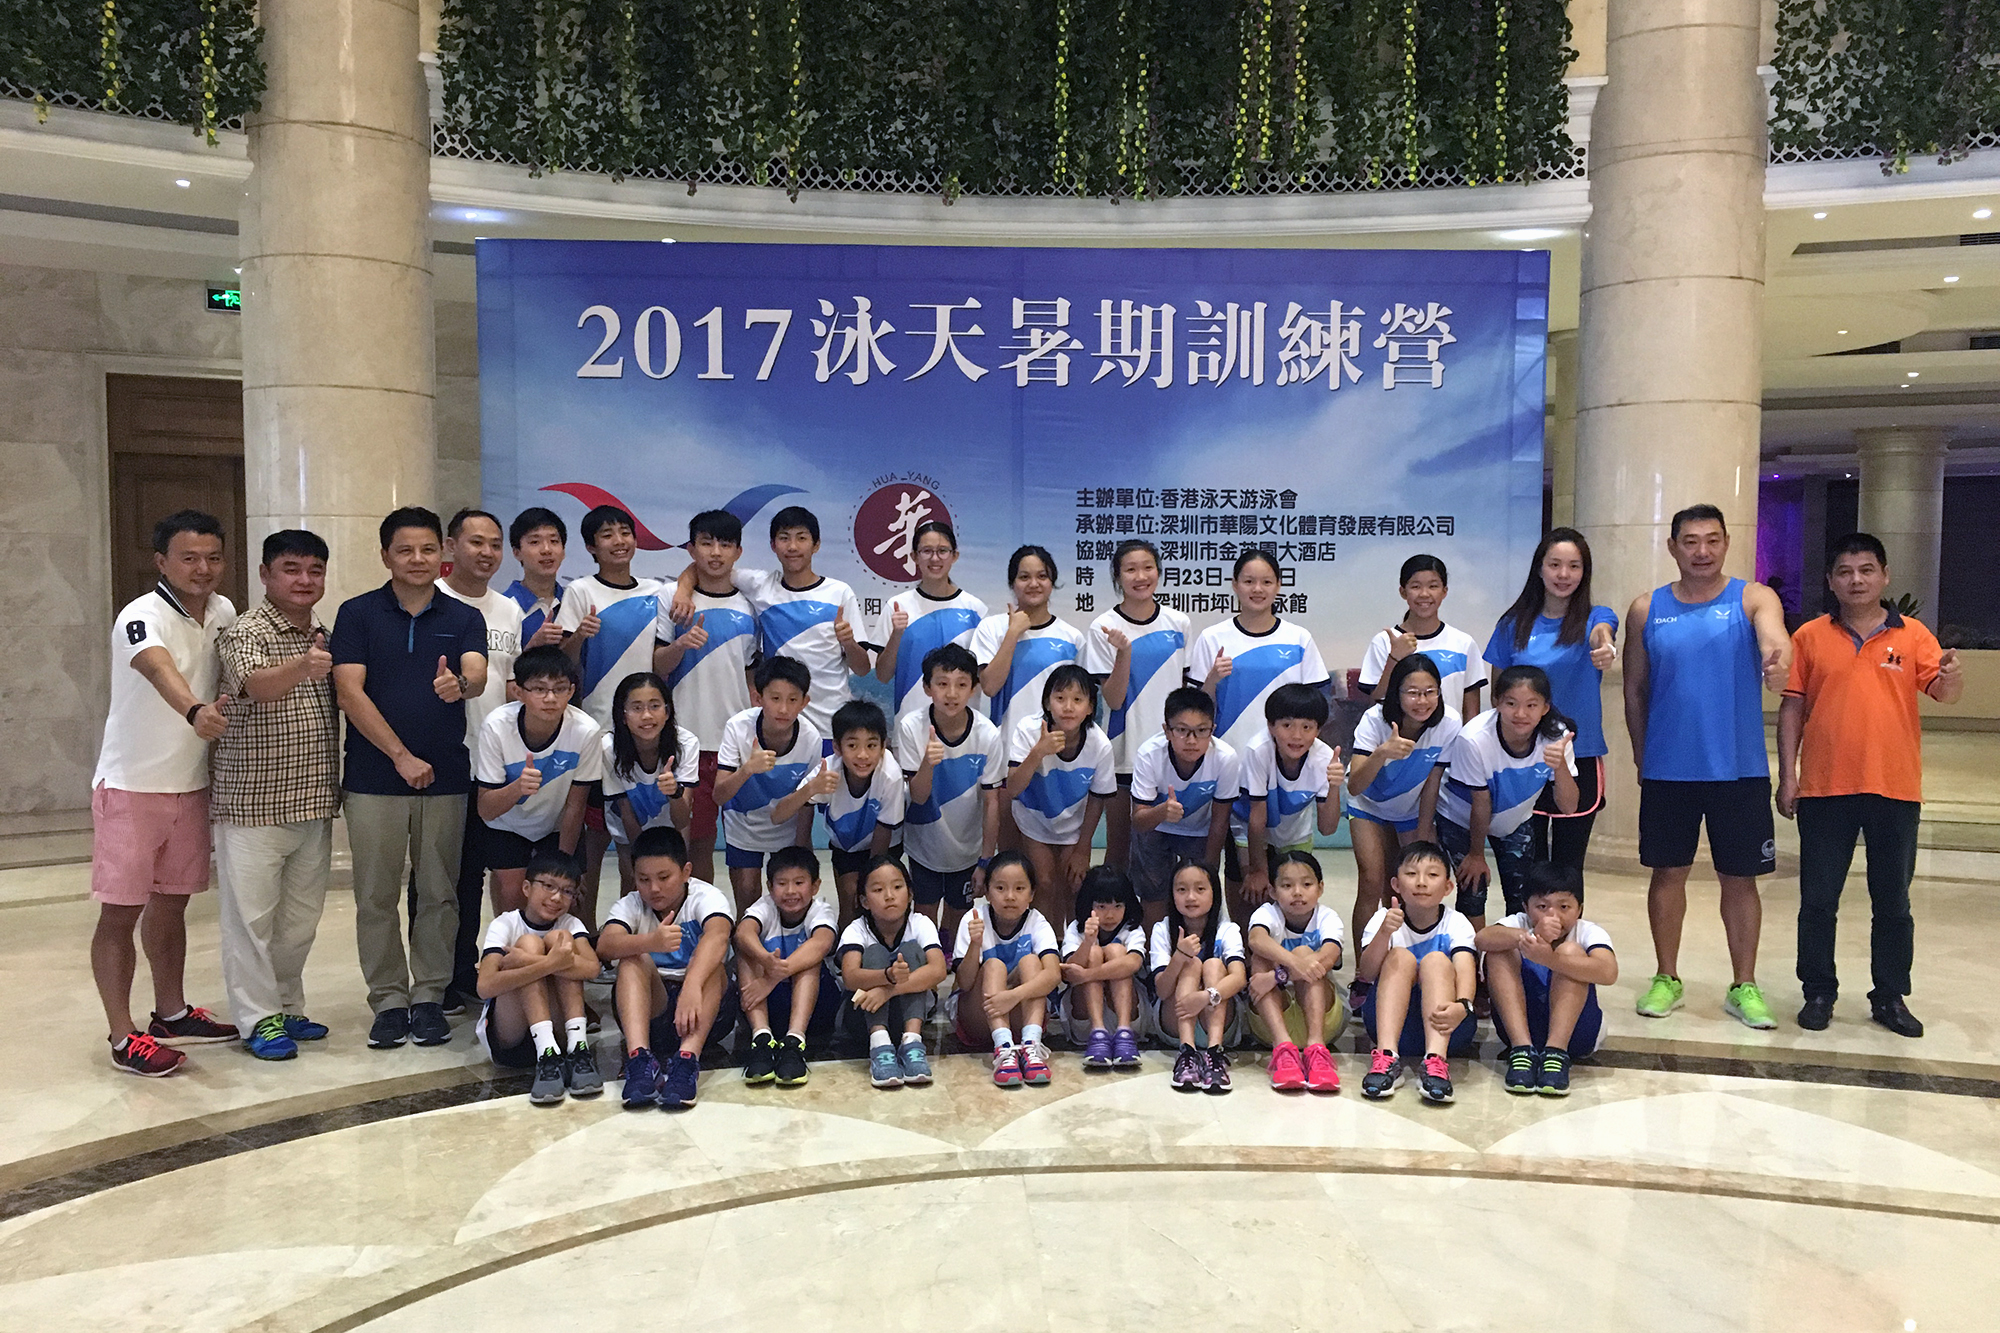 Win Tin Swimming Club - 2017 Summer Camp 3